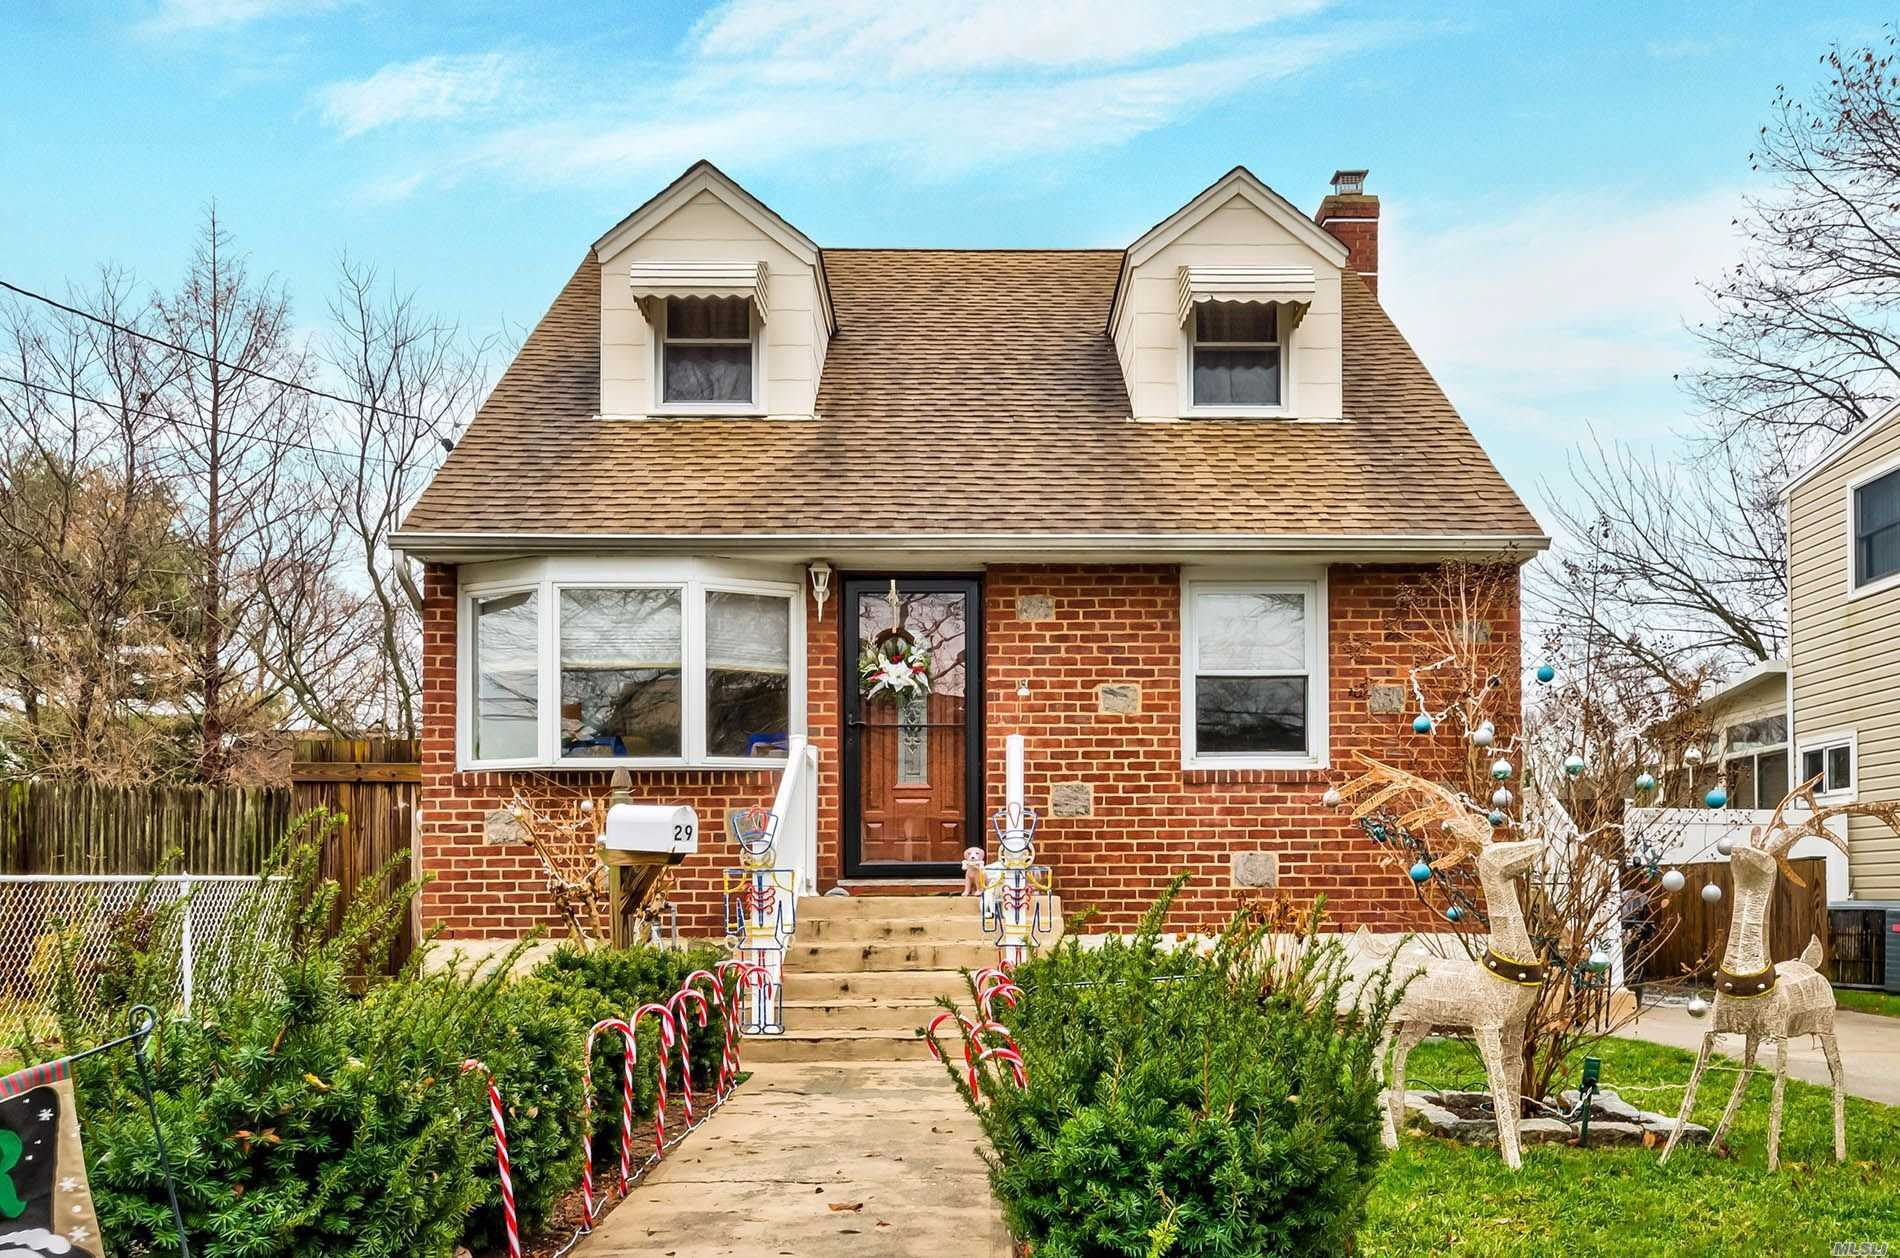 29 Crescent St 11801 - One of Hicksville Homes for Sale